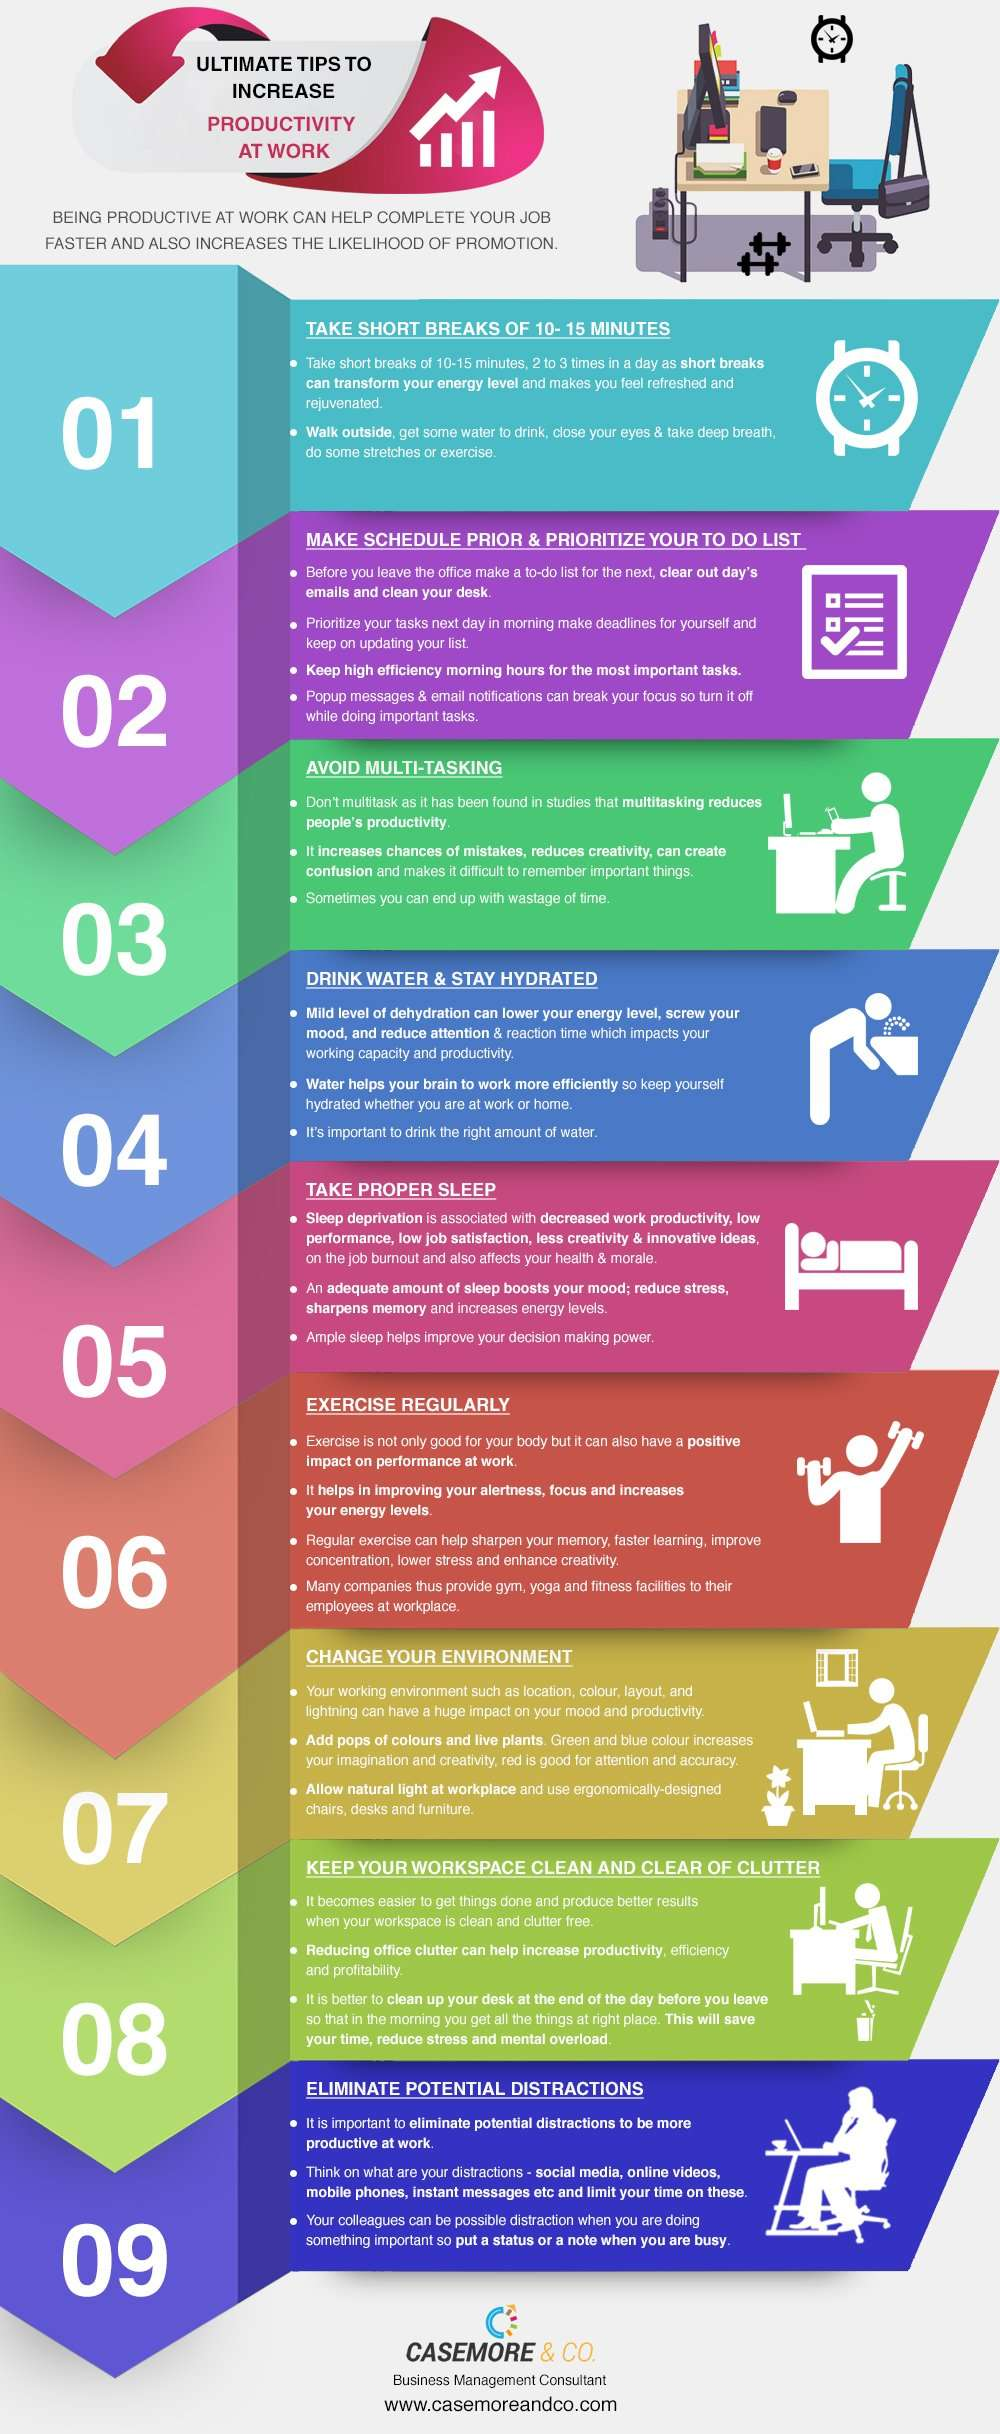 Ultimate Tips to Increase Productivity at Work